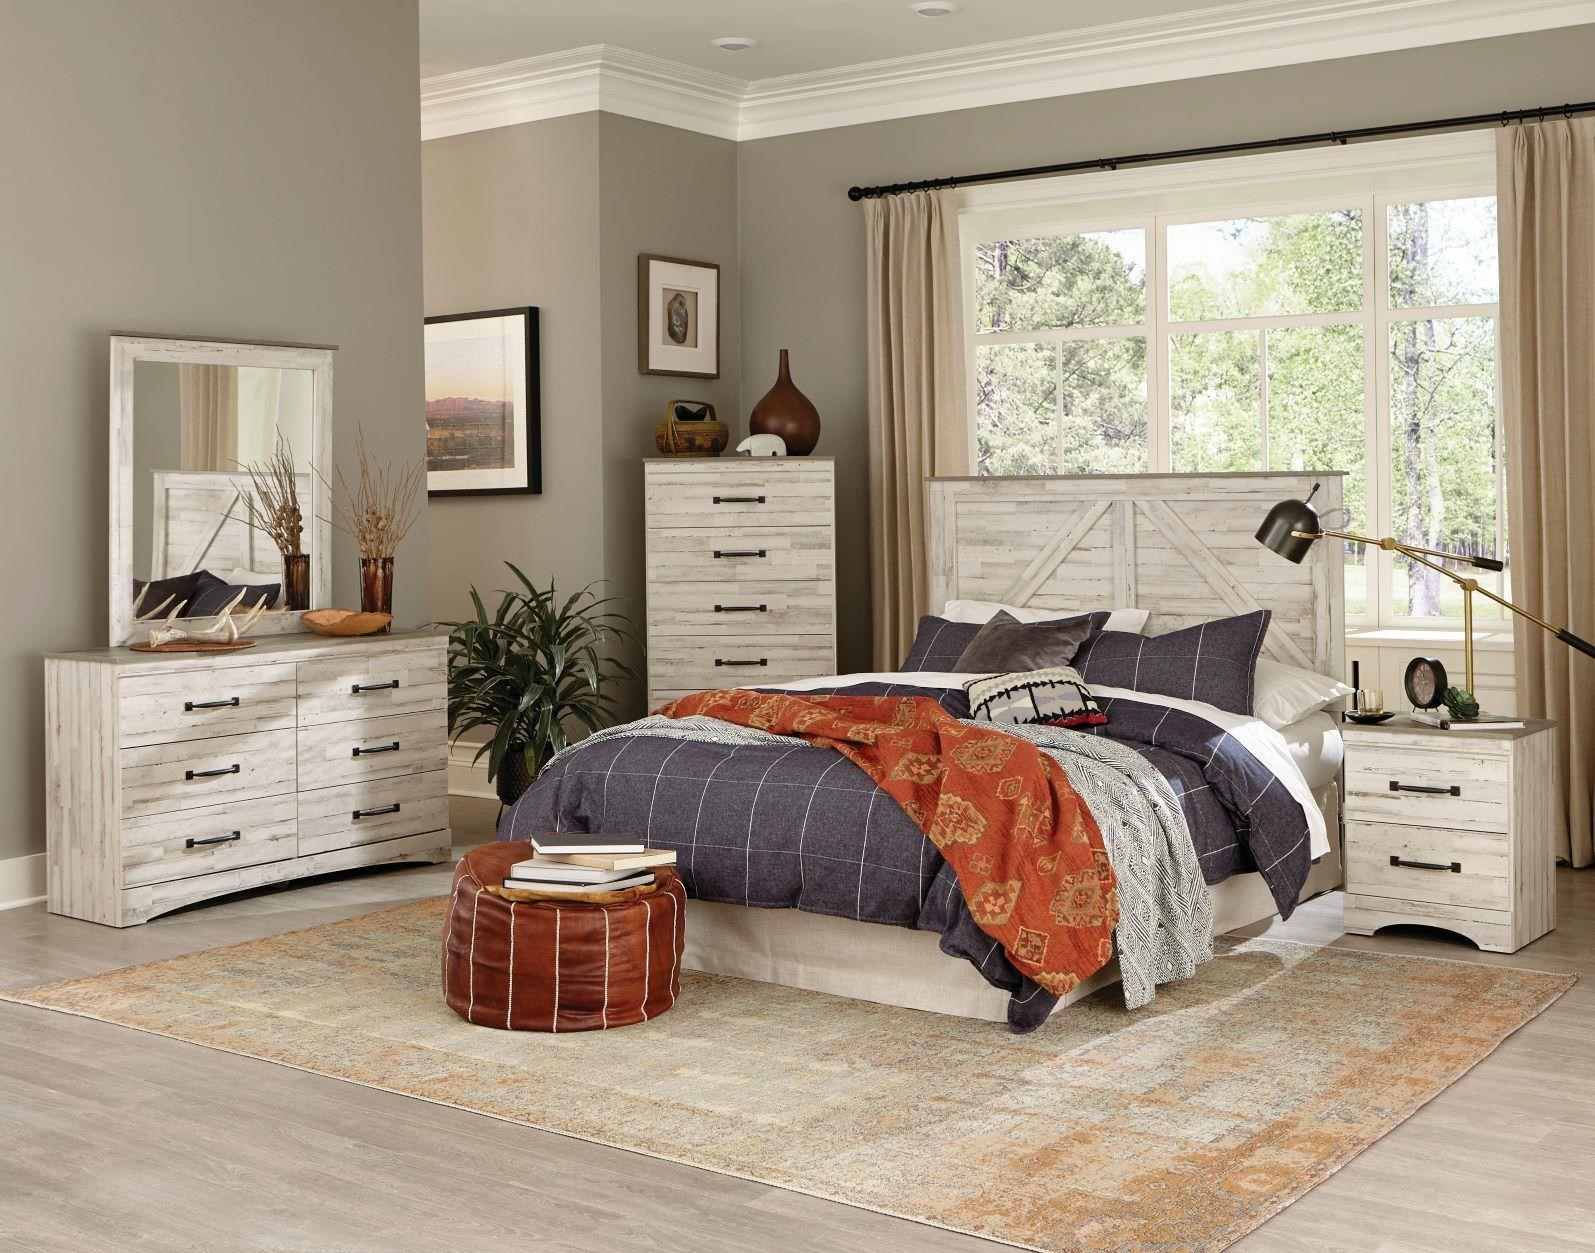 ASPEN FULL/QUEEN HEADBOARD by Kith Furniture at Standard Furniture